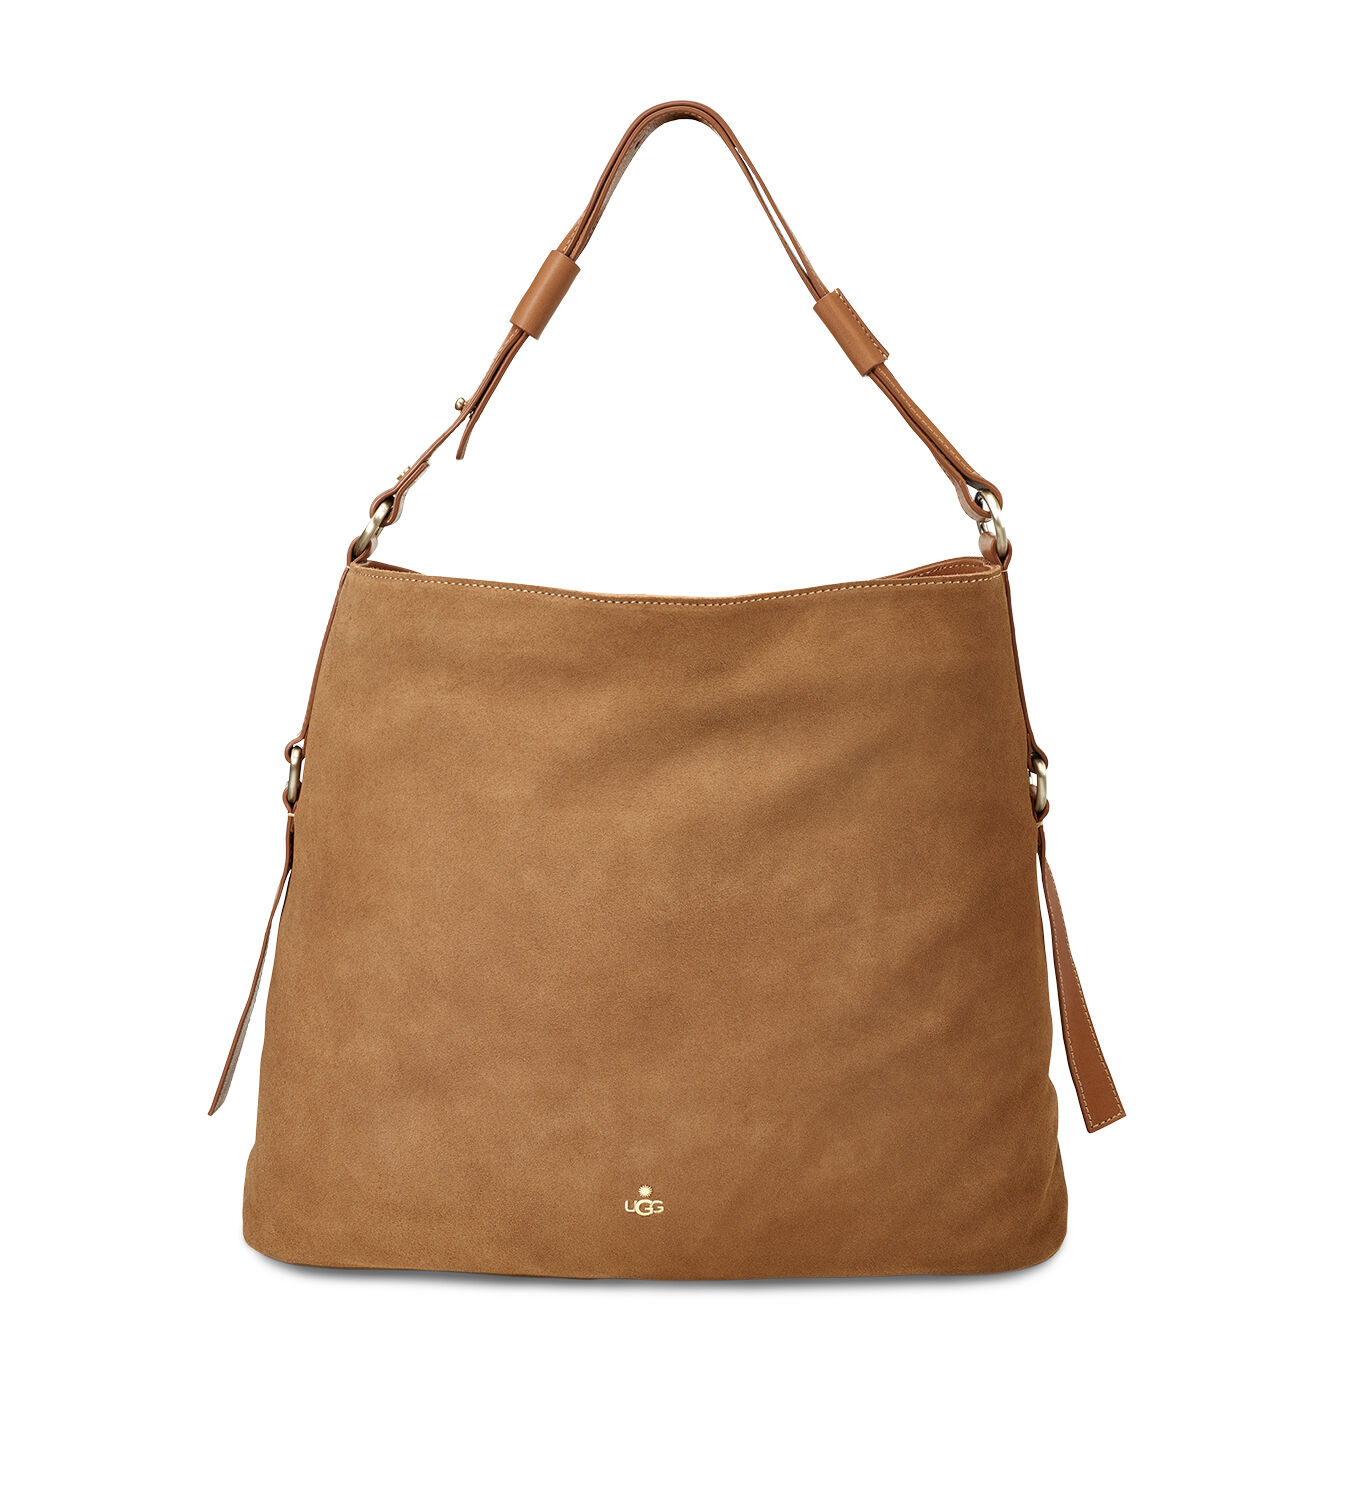 ugg bags and prices